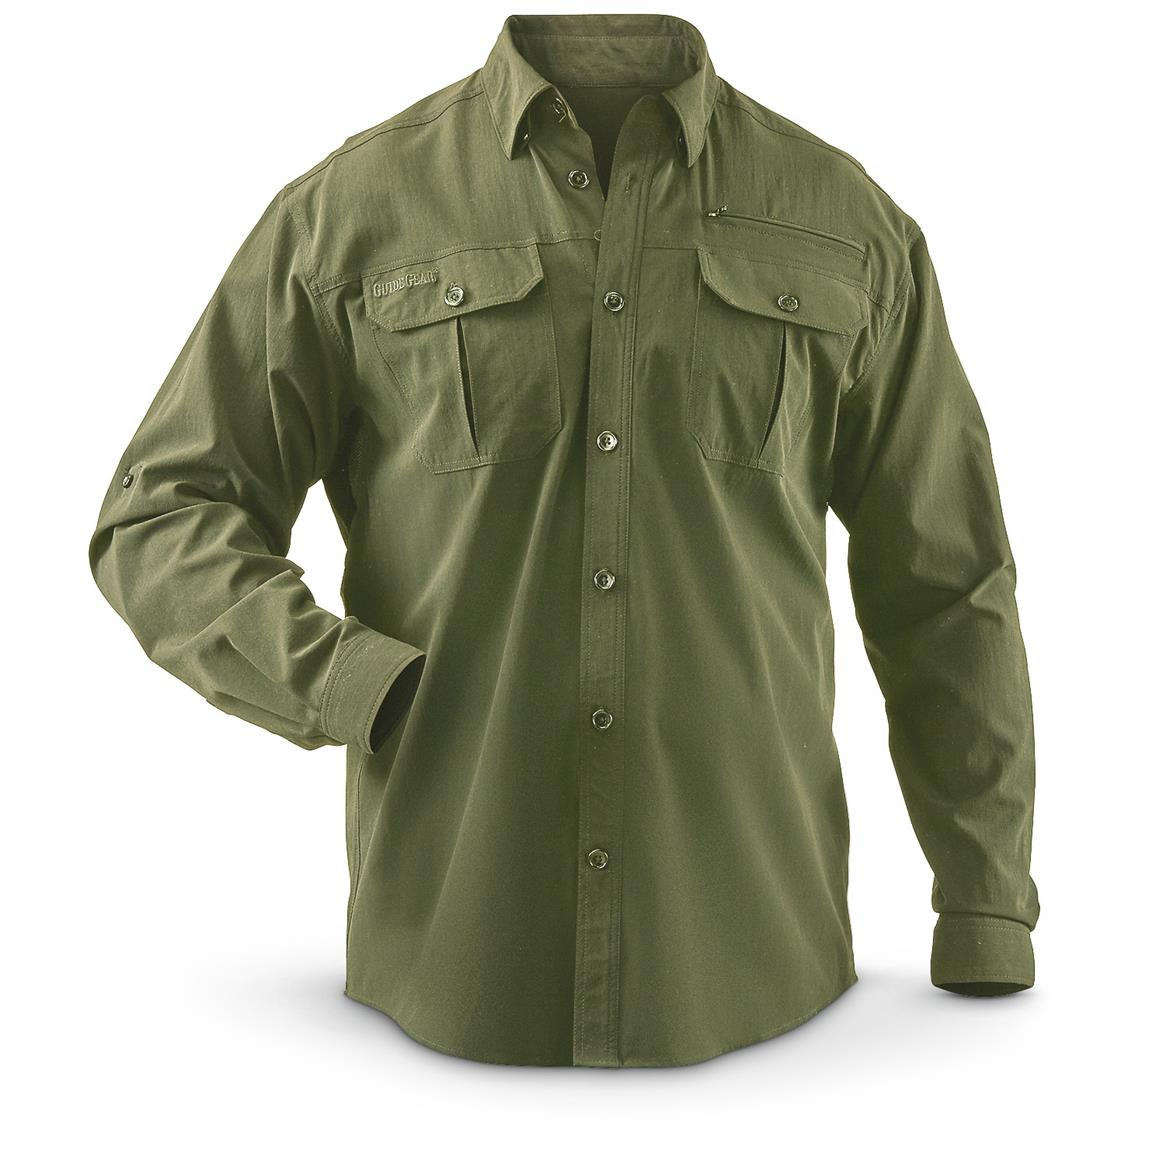 Guide Gear Men's Button Down Long Sleeve Hiking Shirt, Olive